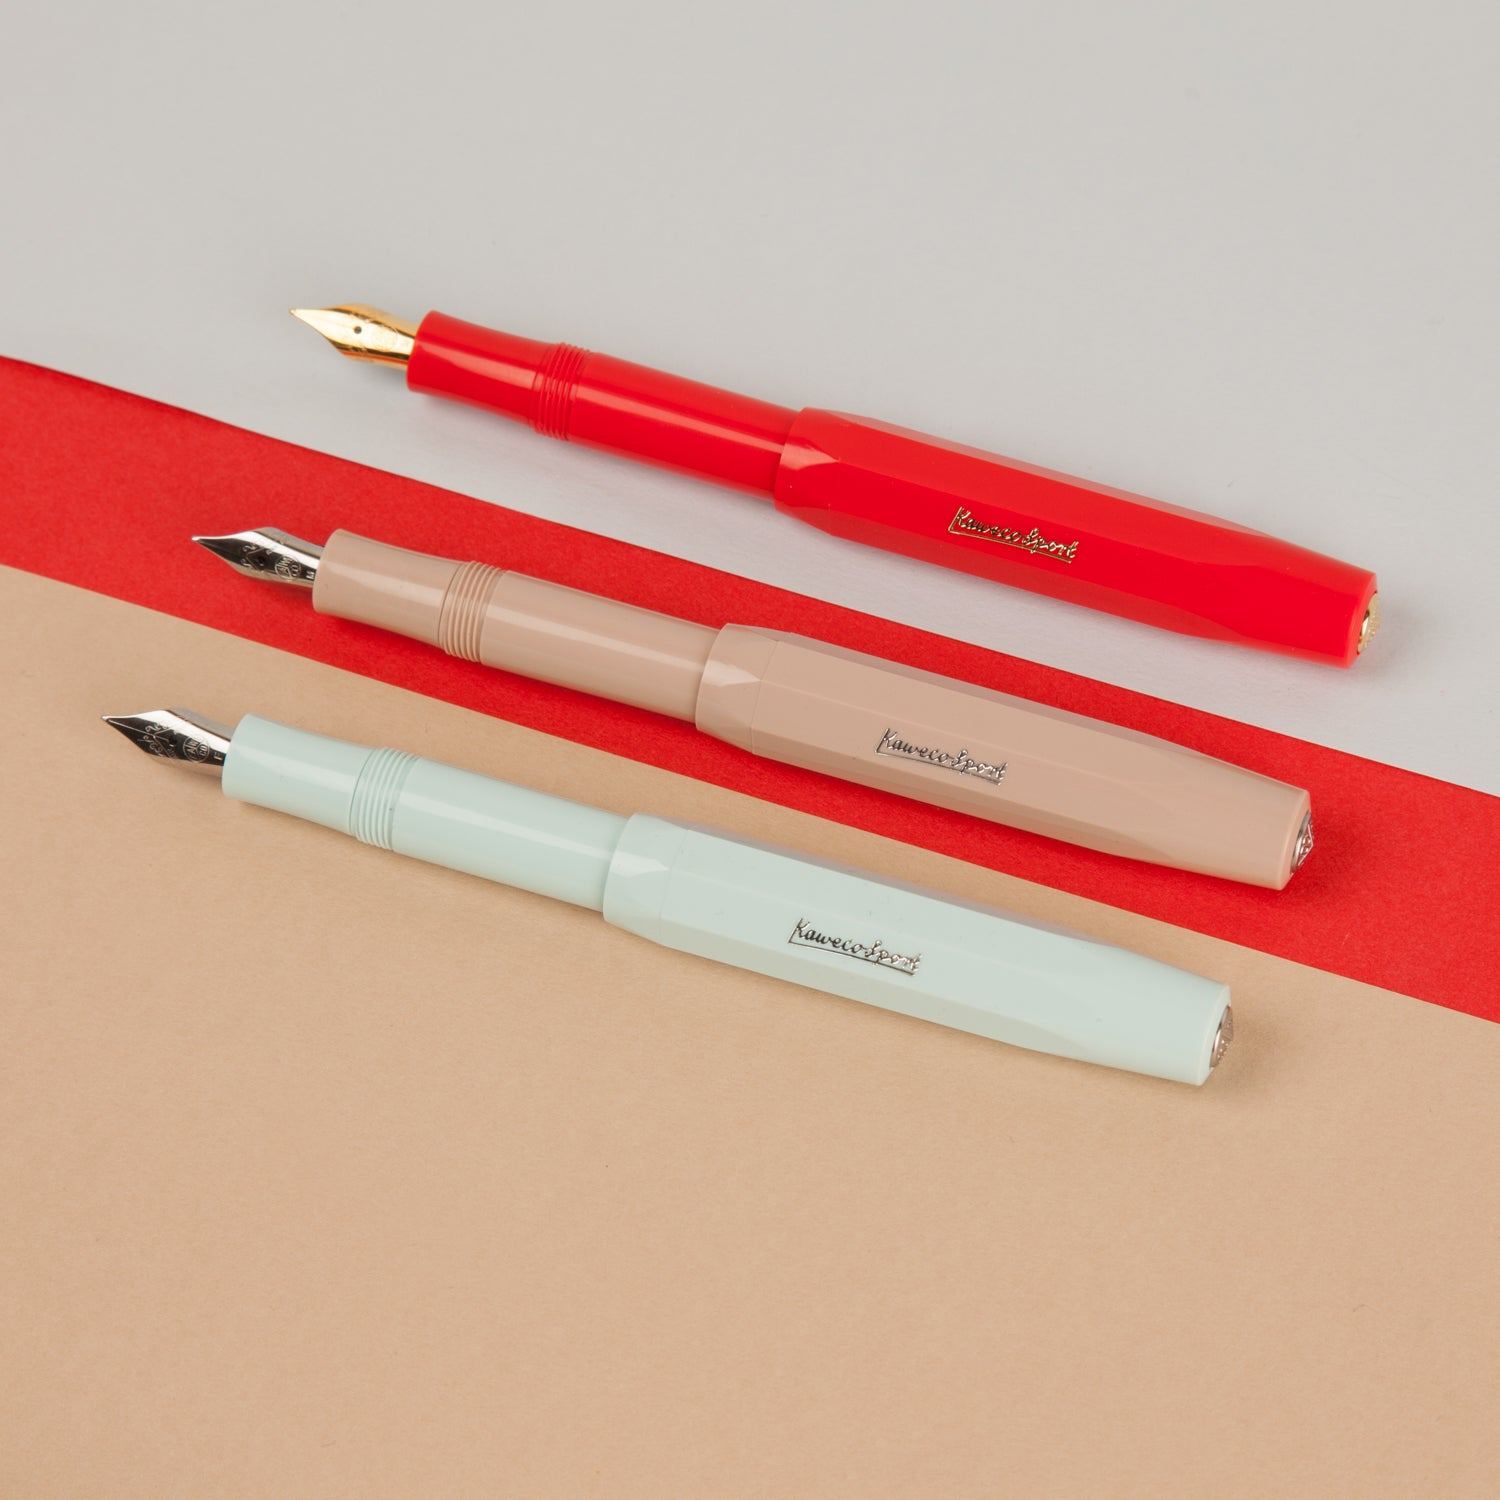 Kaweco Sport Fountain Pen - Red